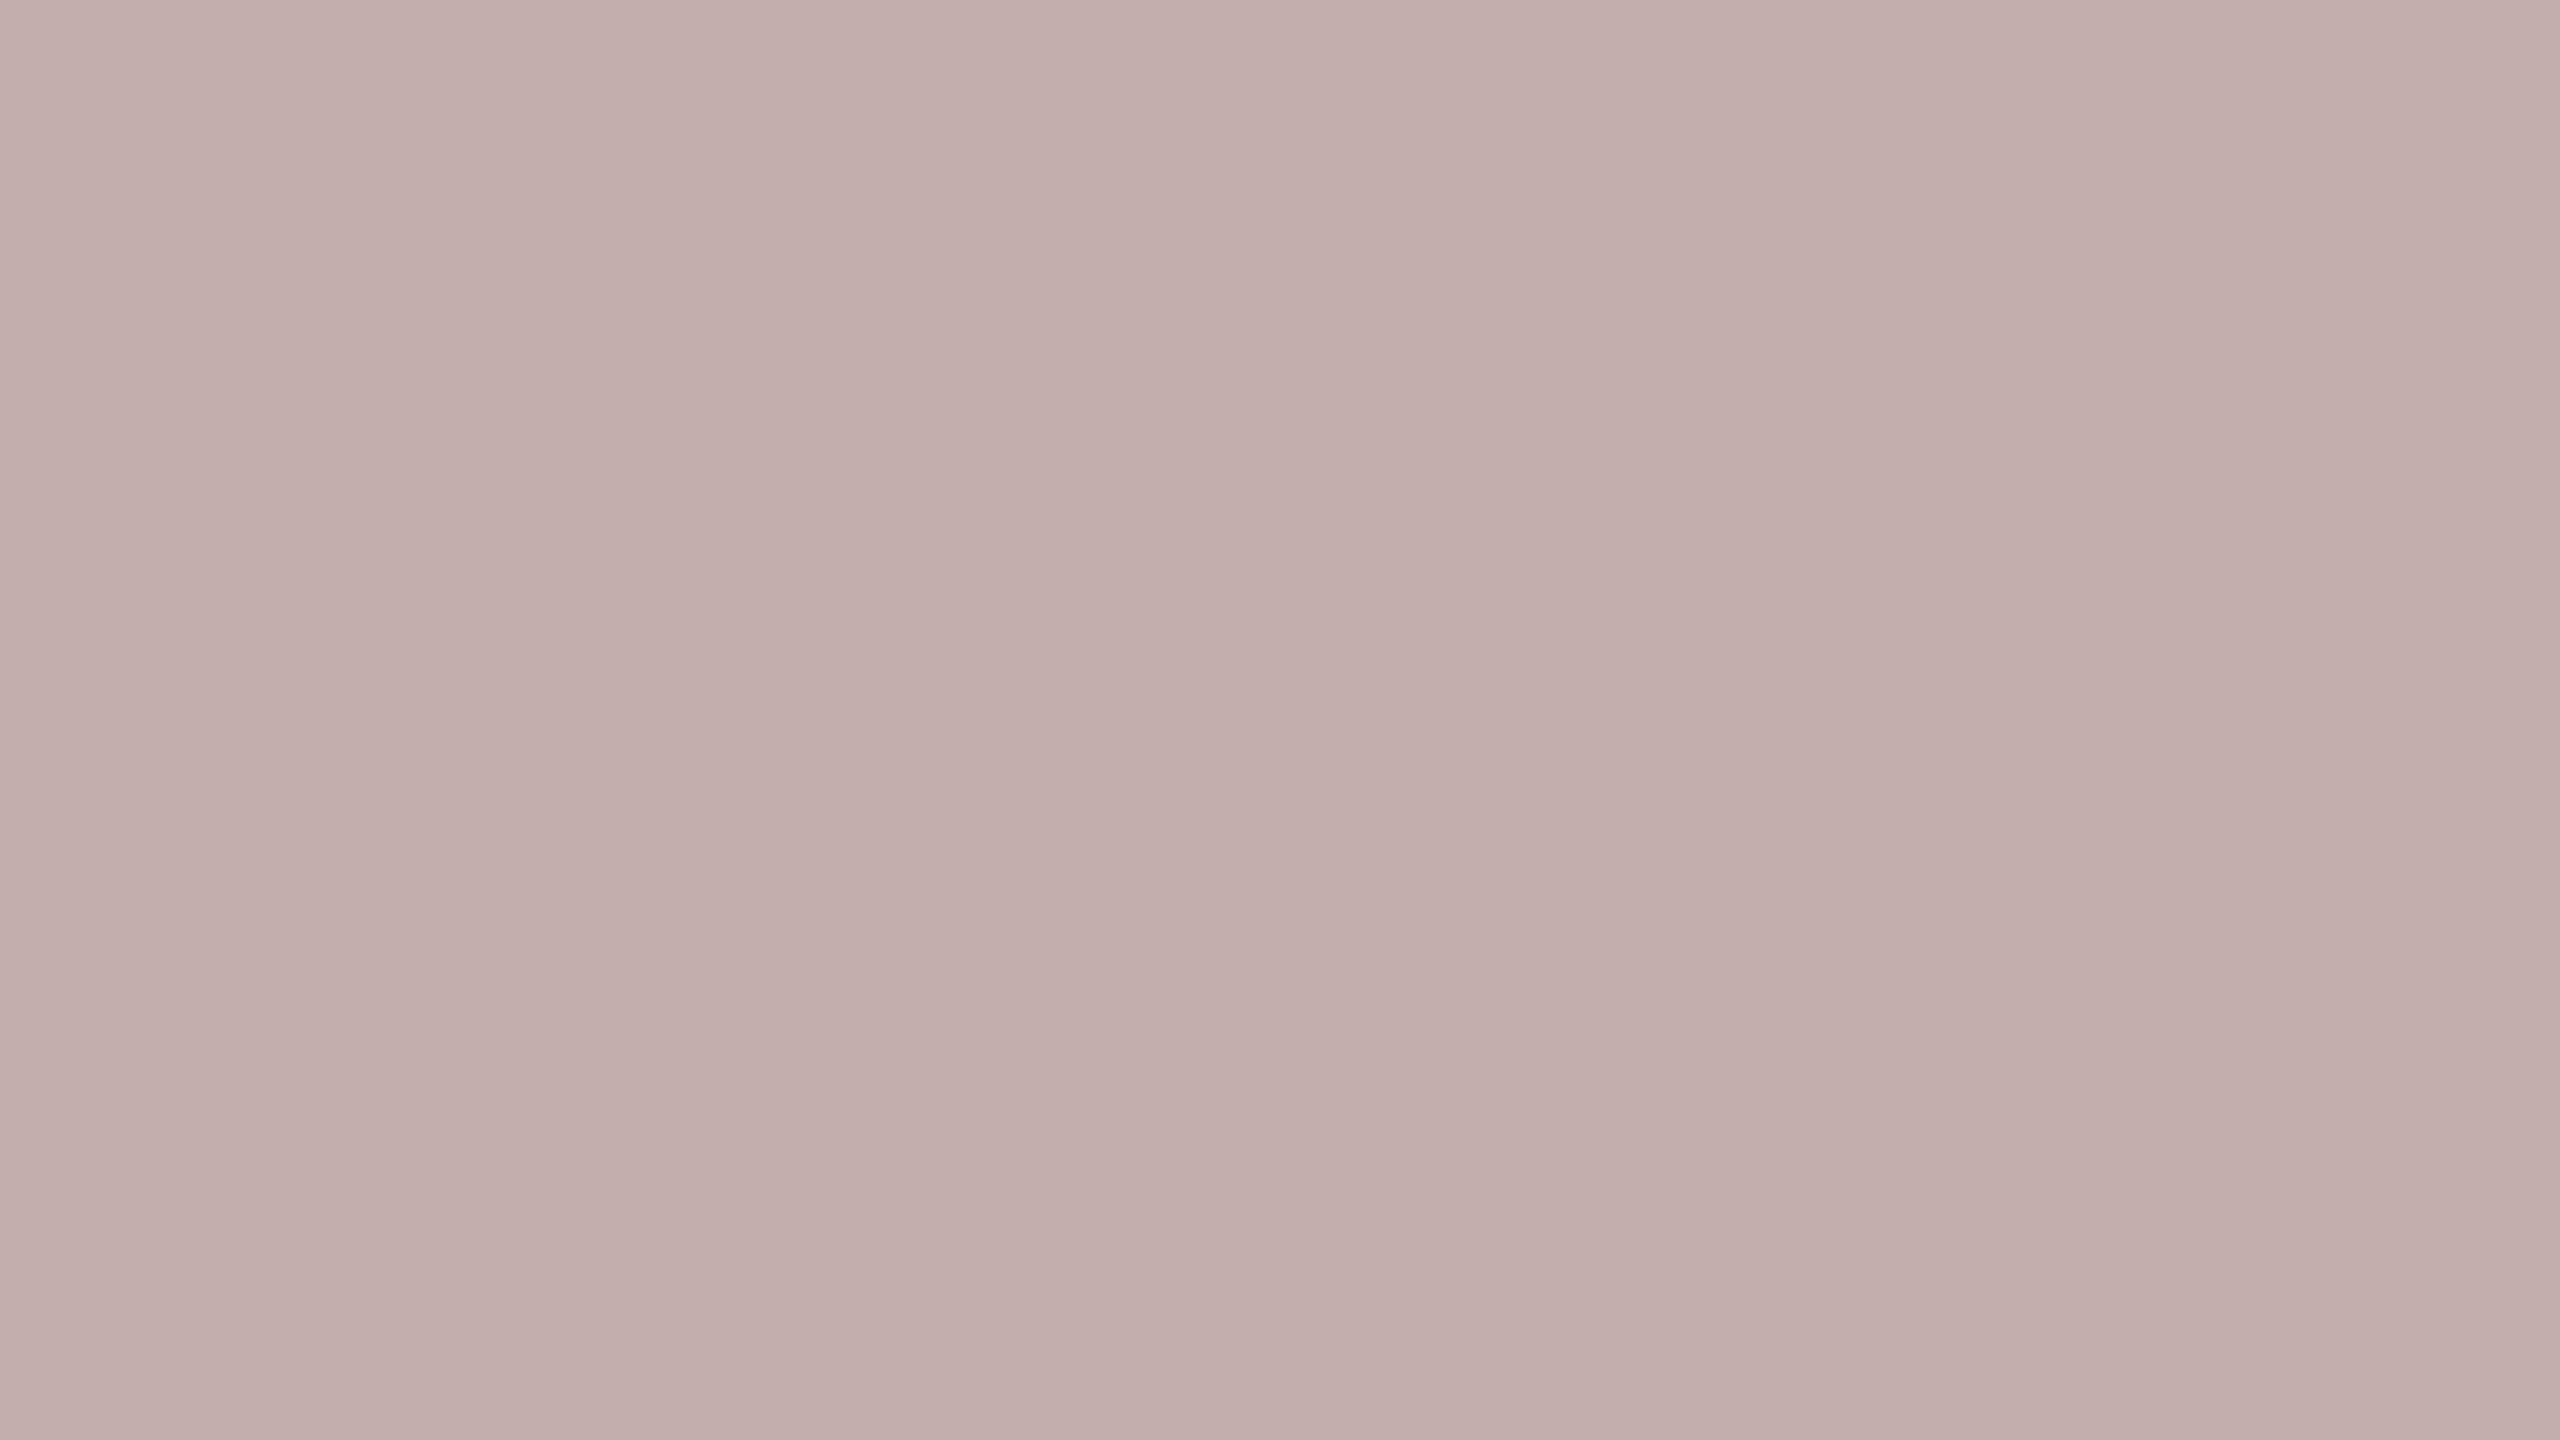 2560x1440 Silver Pink Solid Color Background